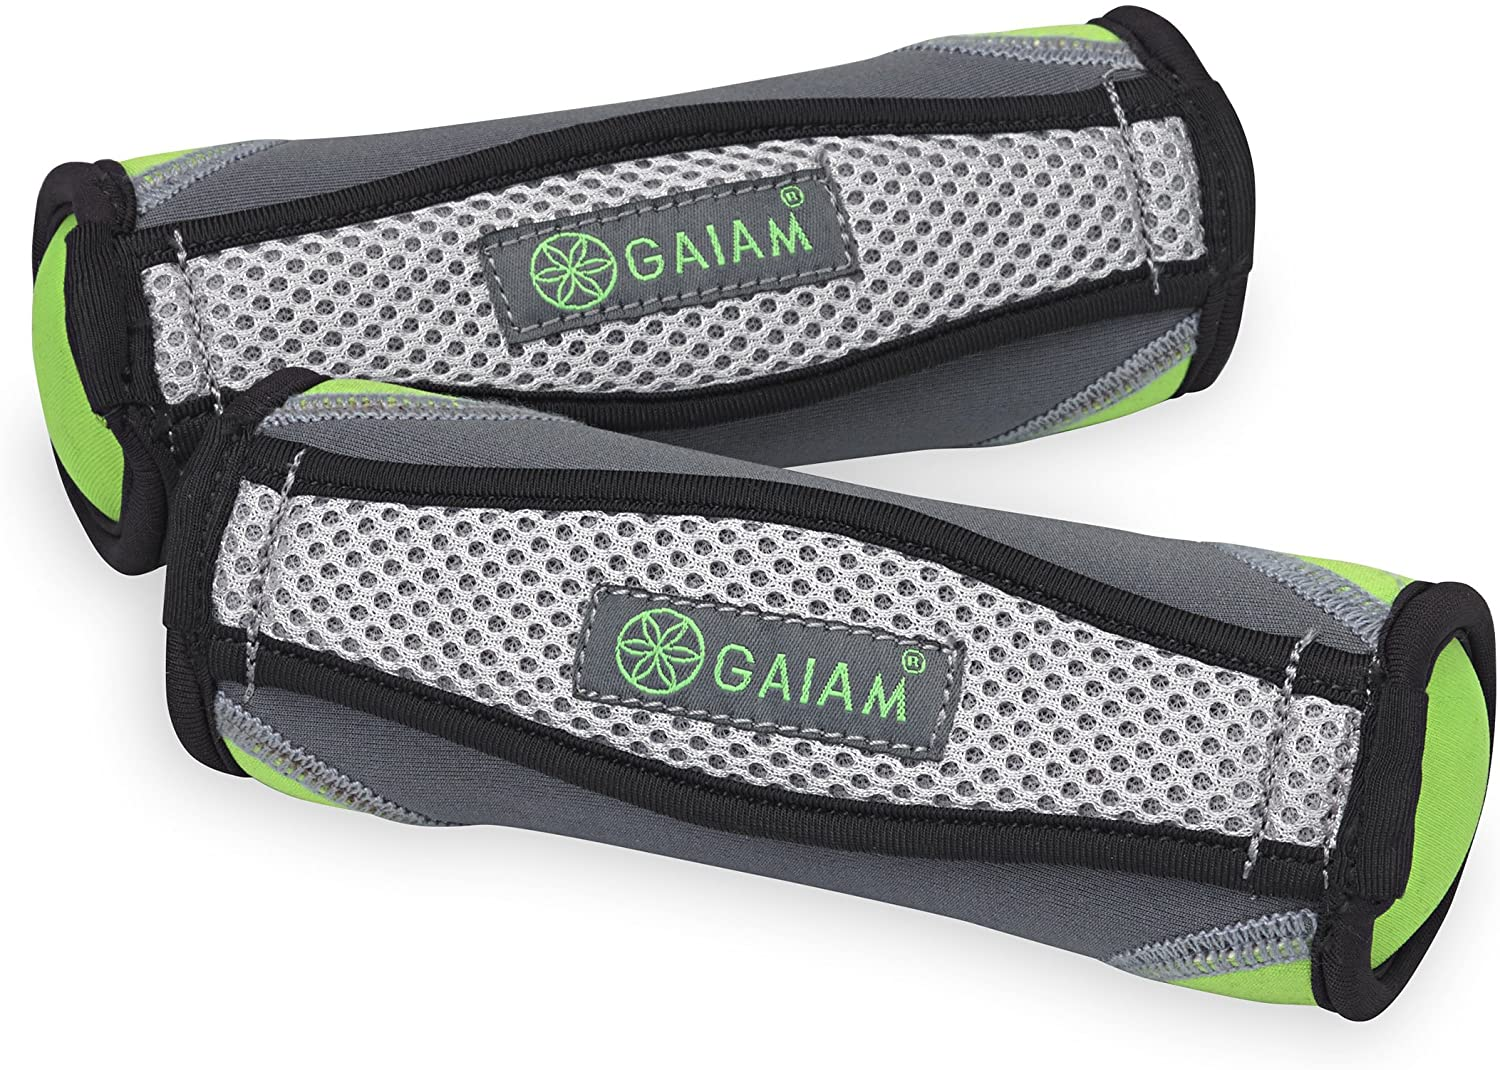 Gaiam Hand Weights for Women & Men Soft Dumbbell Walking Hand Weight Sets with Hand Strap - Walking, Running, Physical Therapy, Aerobics (Available in 2lb and 4lb Sets)